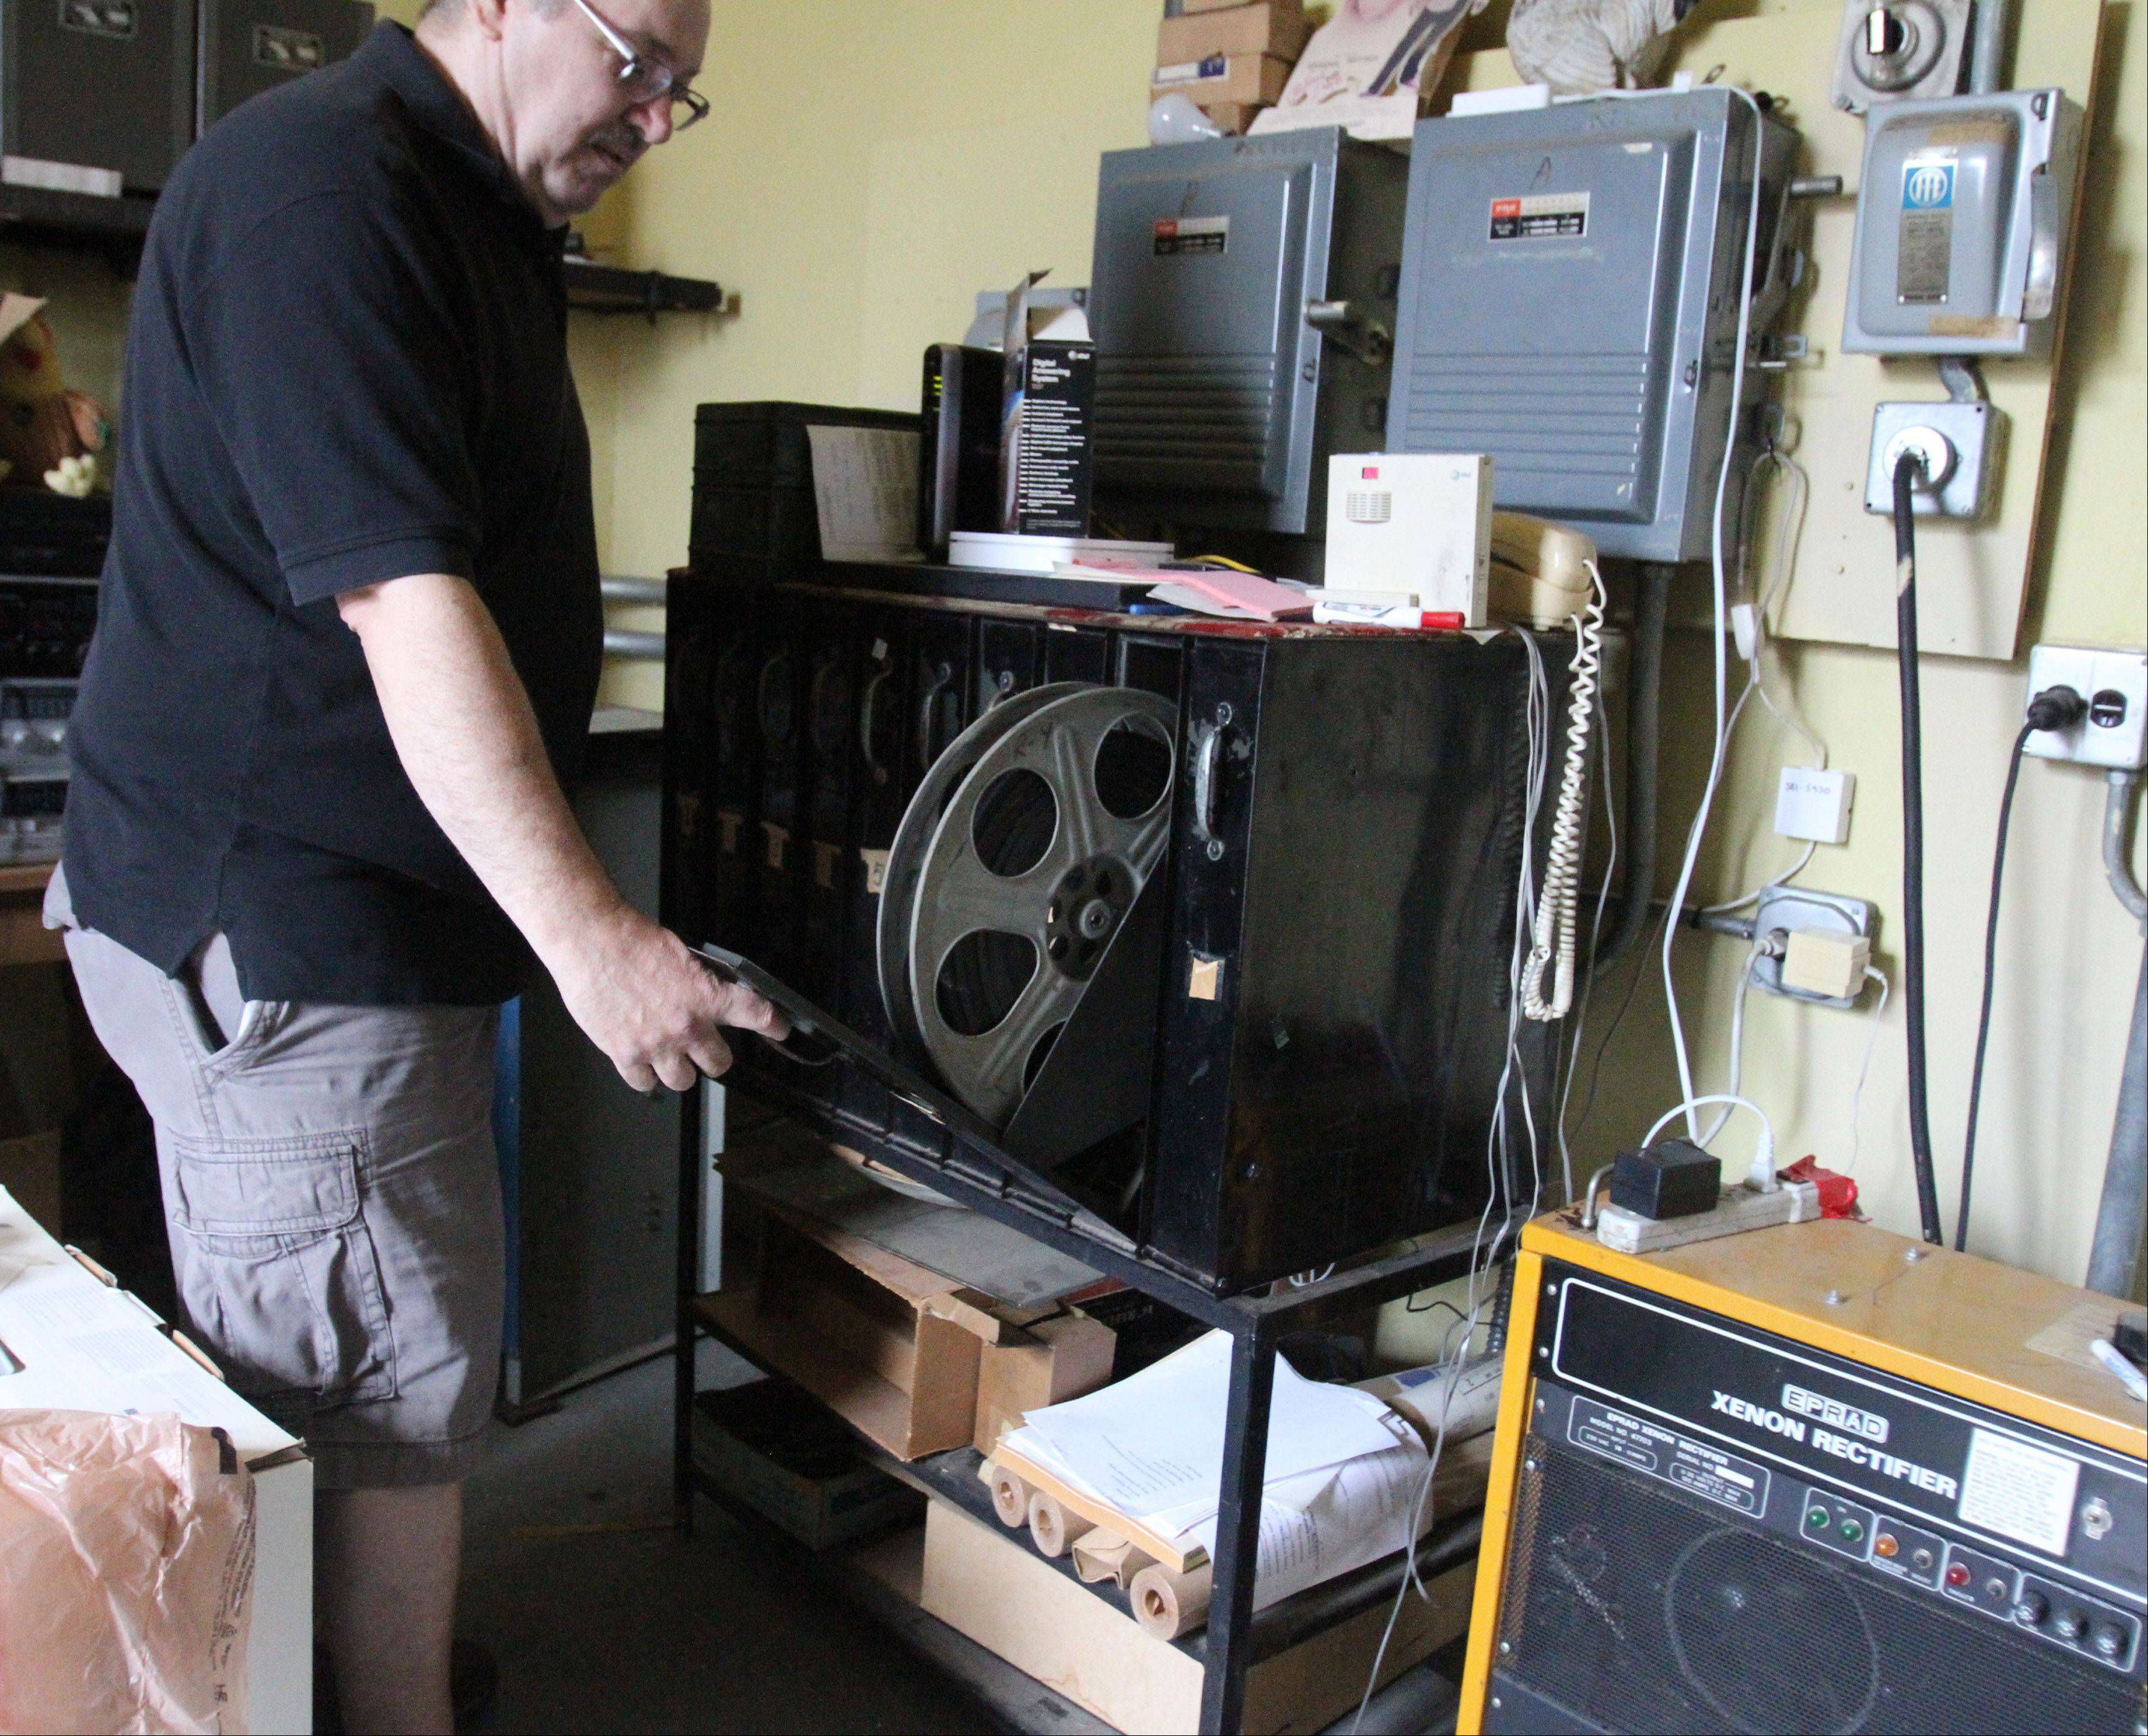 Catlow theater co-owner Tim O'Connor displays an older type film storage system that is no longer used.